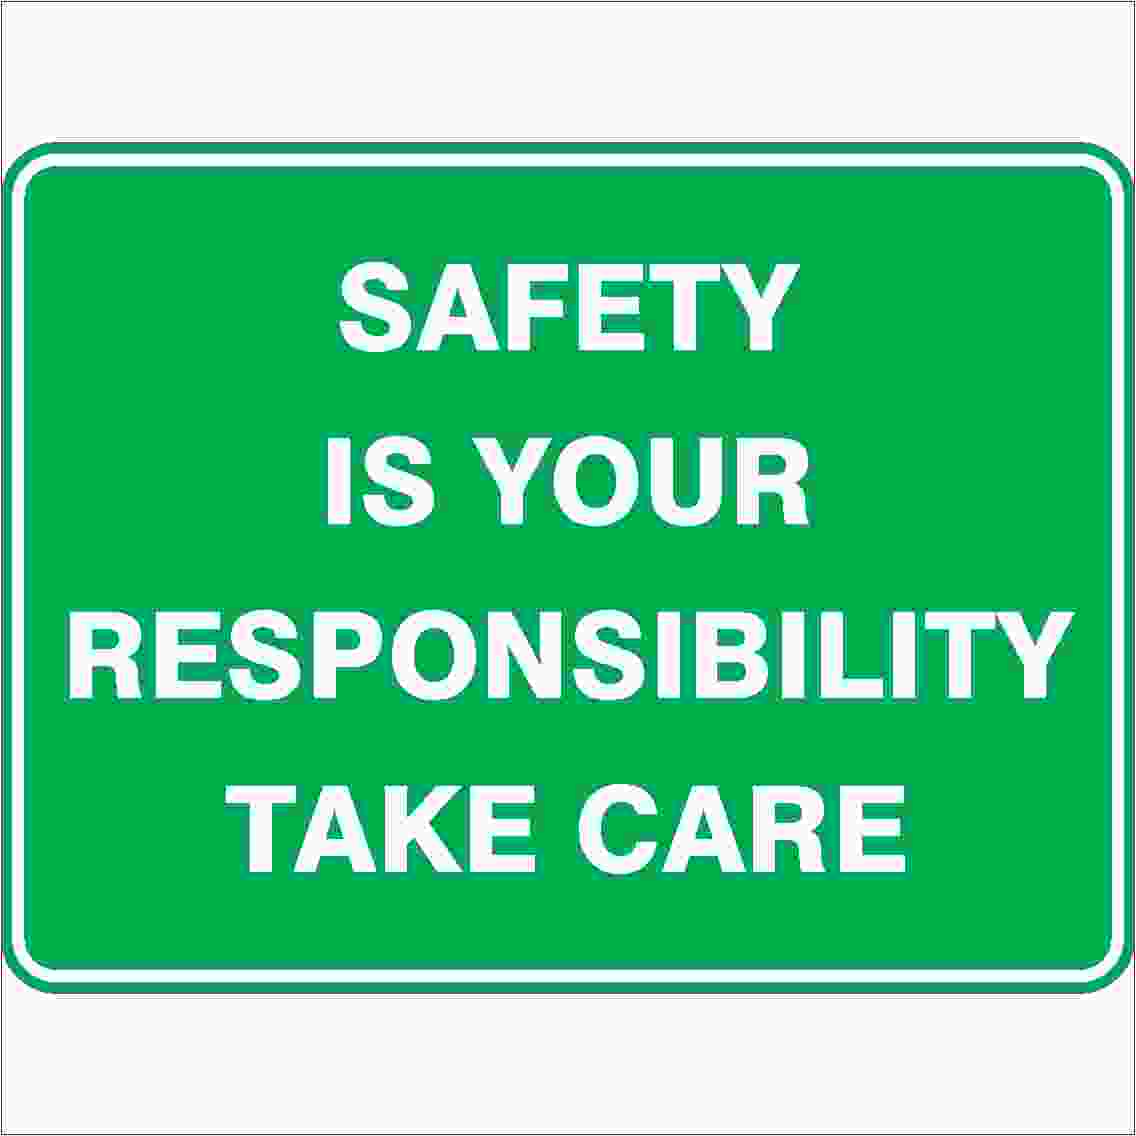 Emergency Signs SAFETY IS YOUR RESPONSIBILITY TAKE CARE